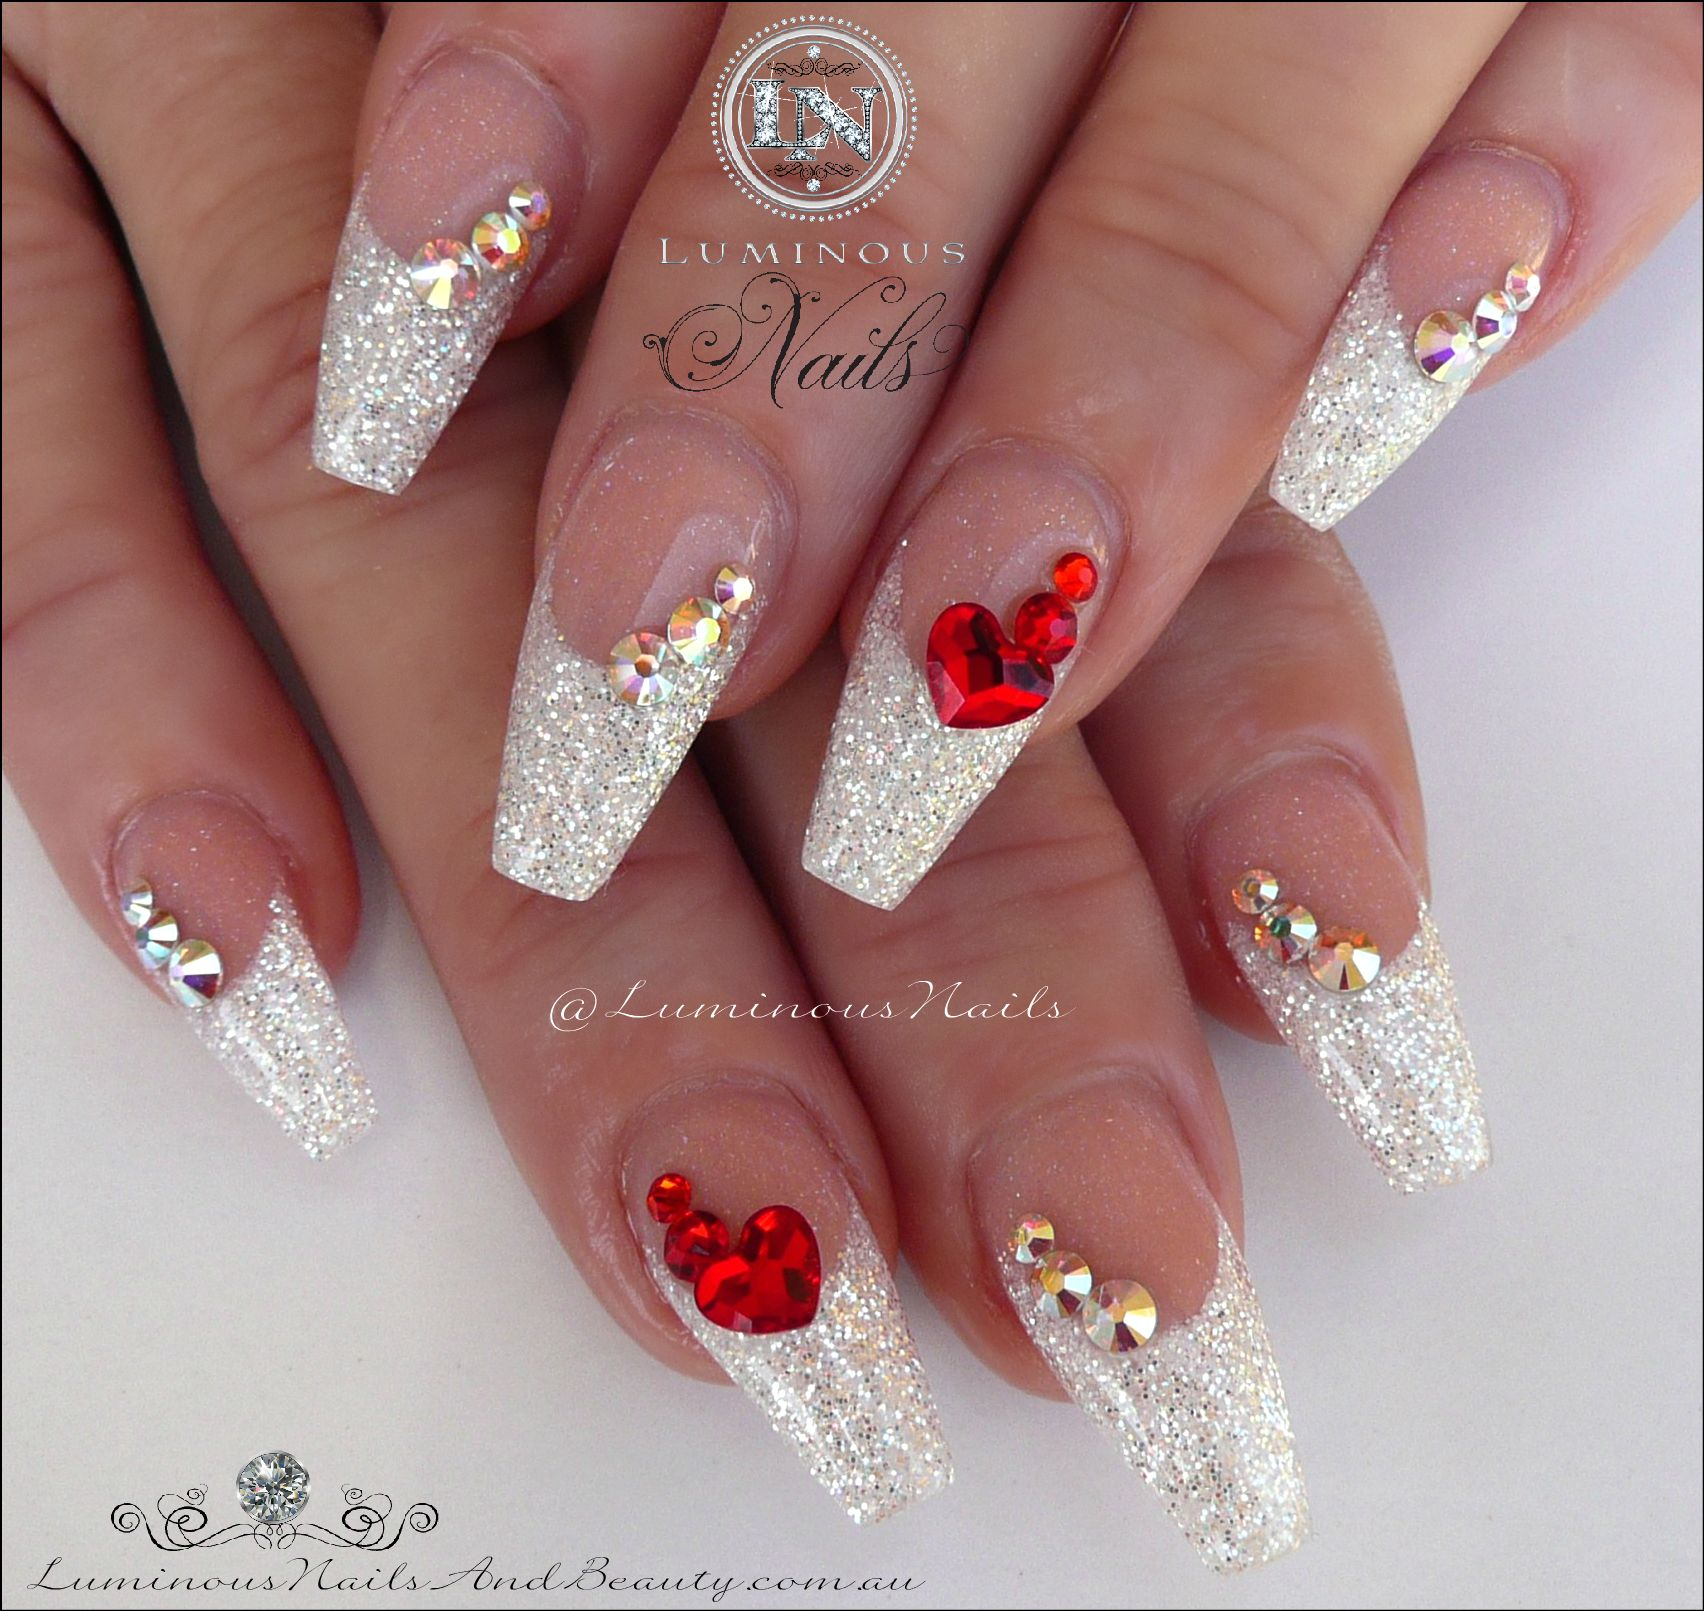 White Christmas Acrylic Nails with a Touch of Red!